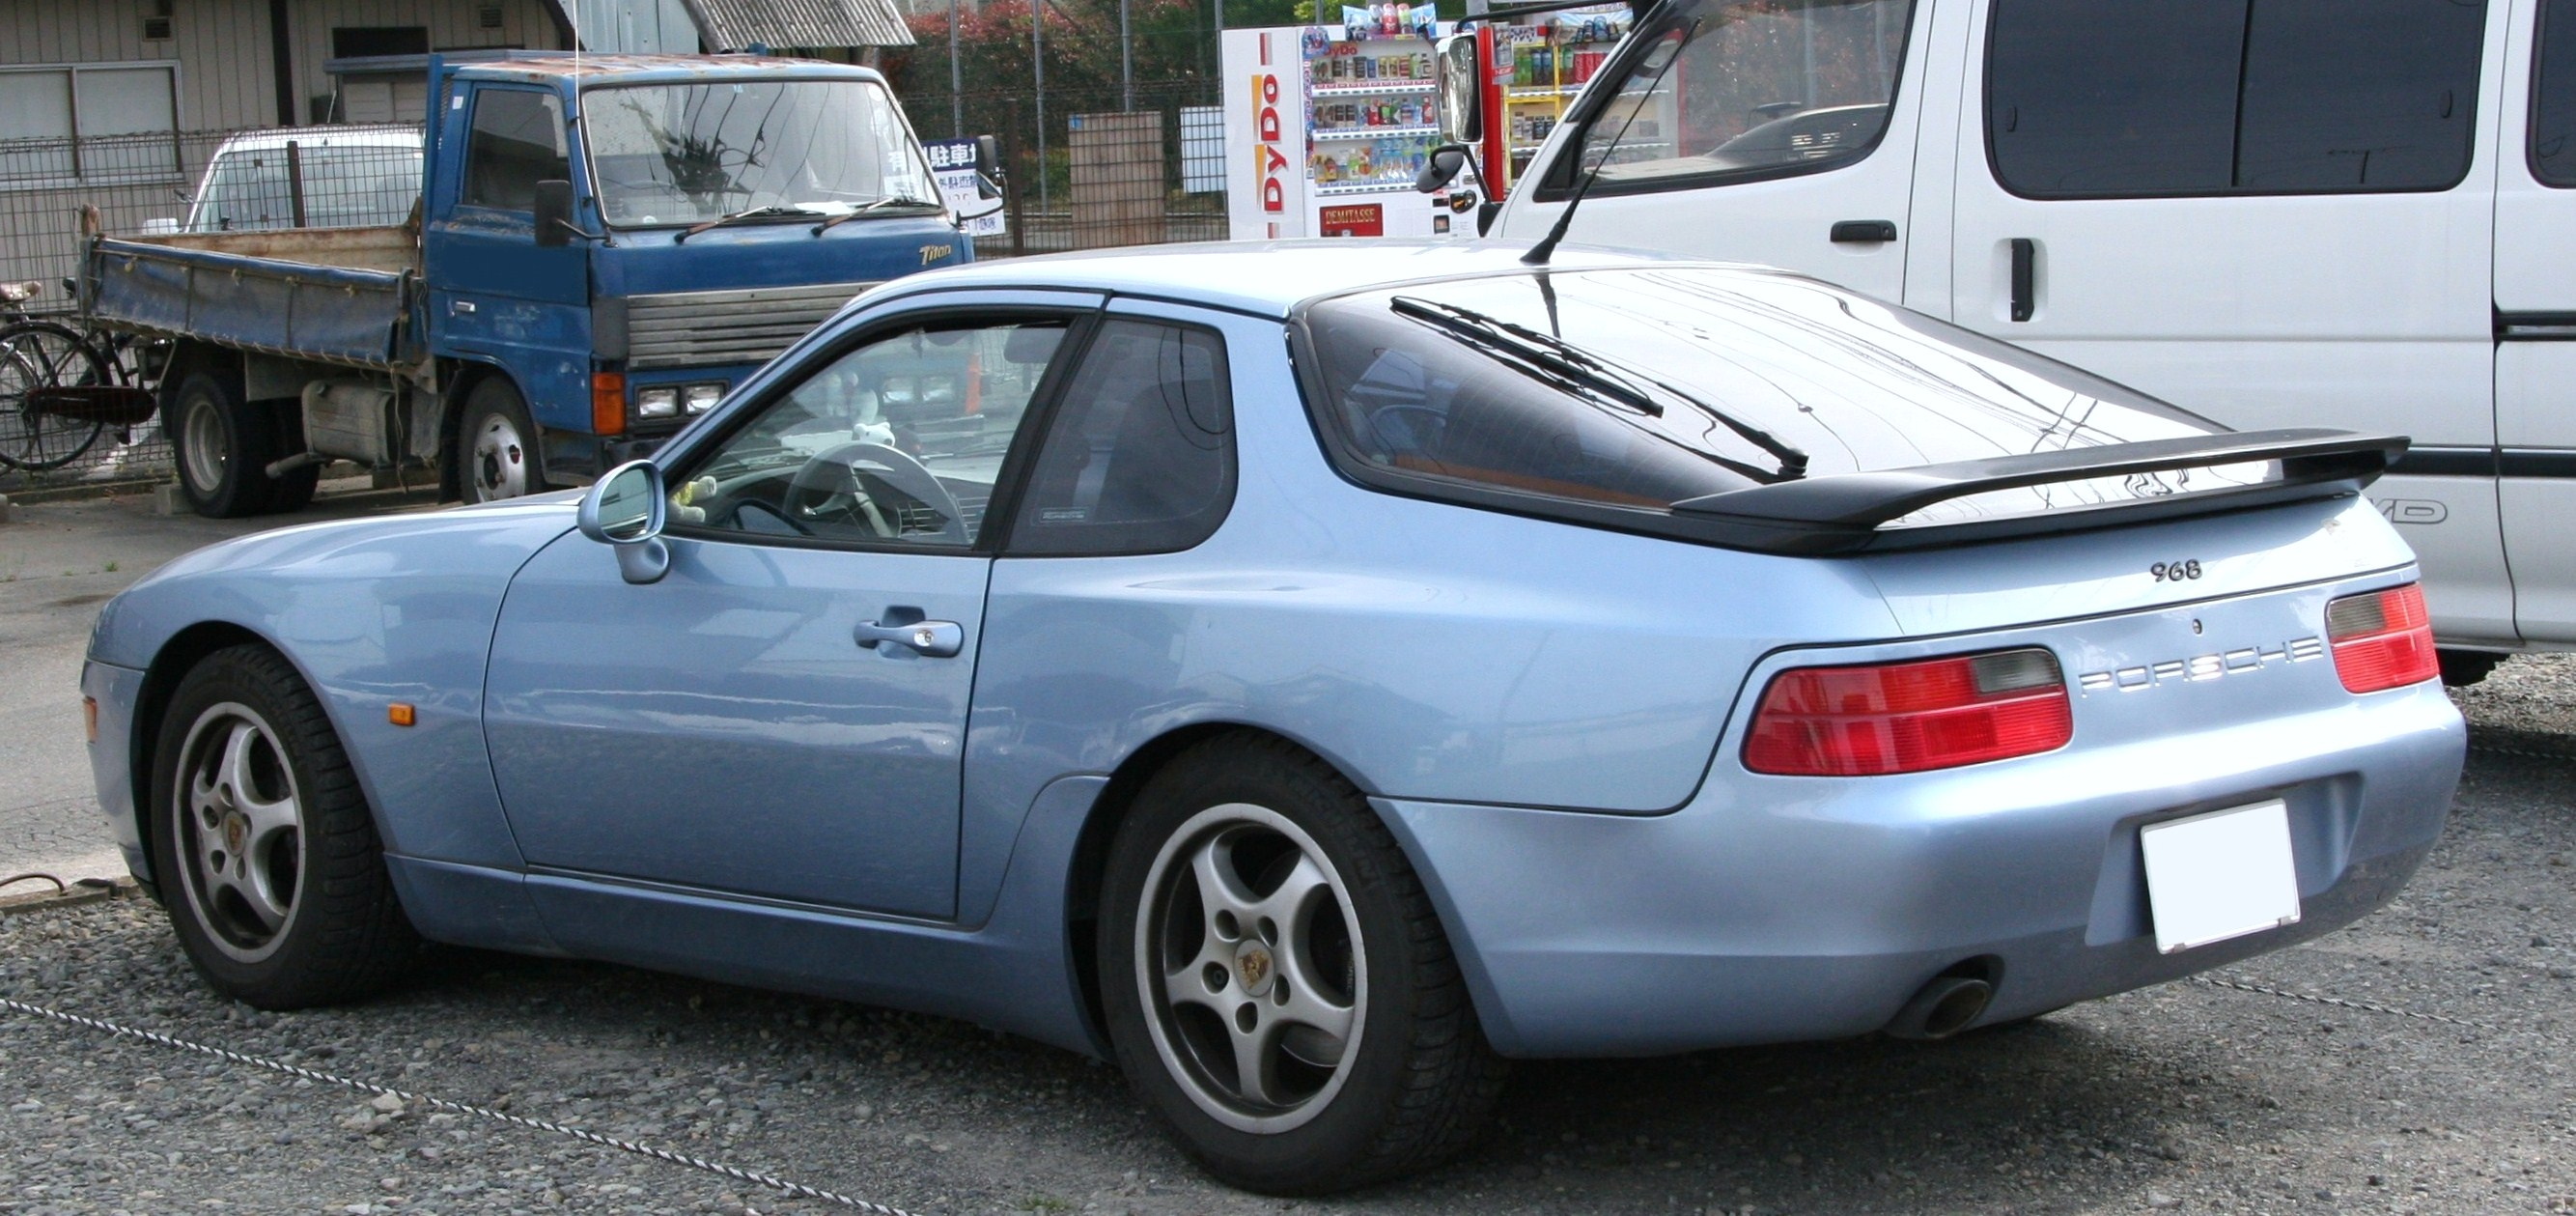 file:porsche 968 01 rear - wikimedia commons